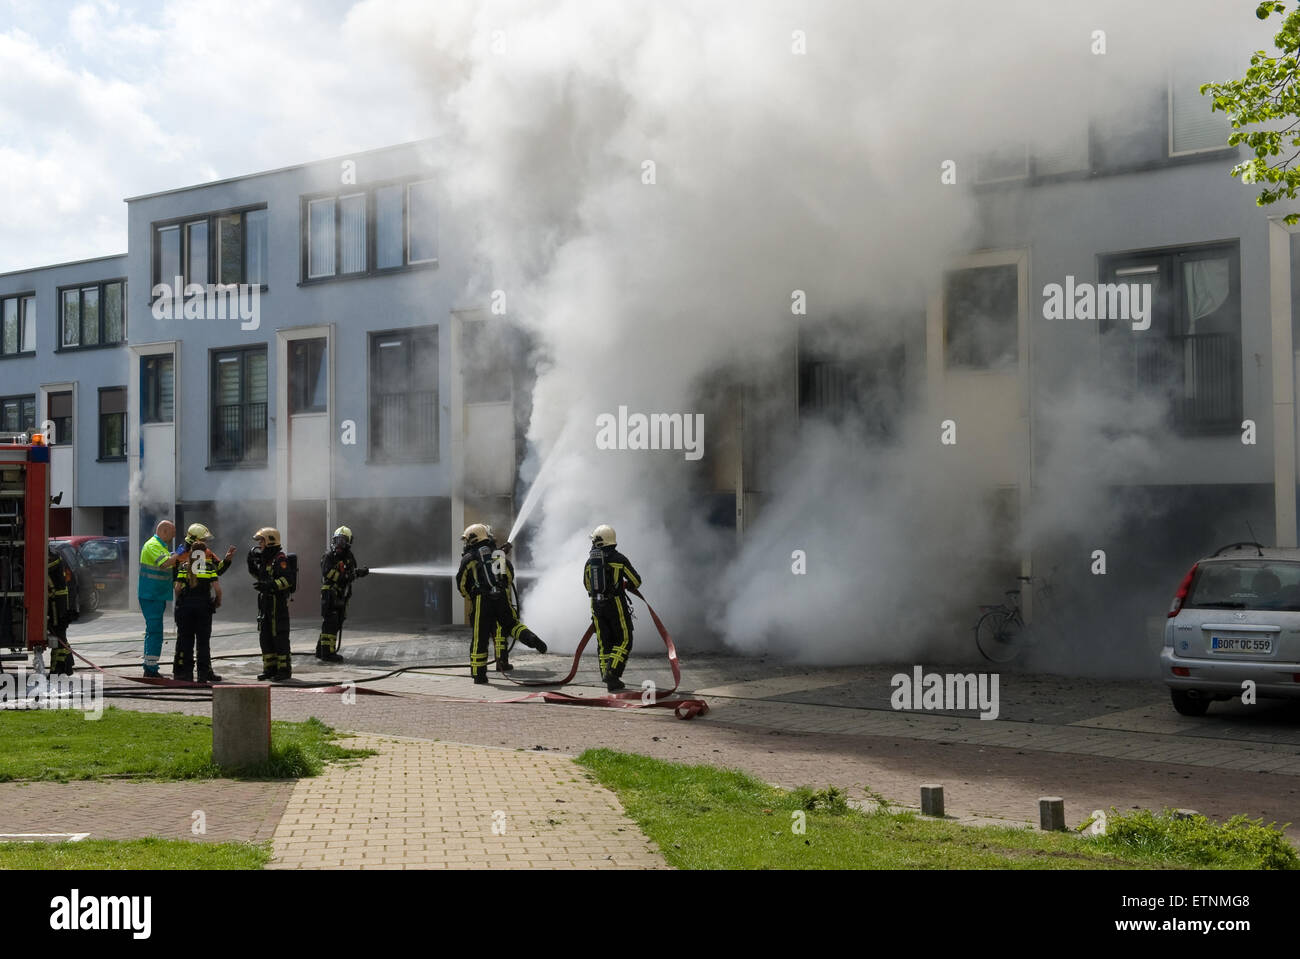 ENSCHEDE, THE NETHERLANDS - 07 MAY, 2015: Firefighters are busy to extinguish a fire in a house - Stock Image